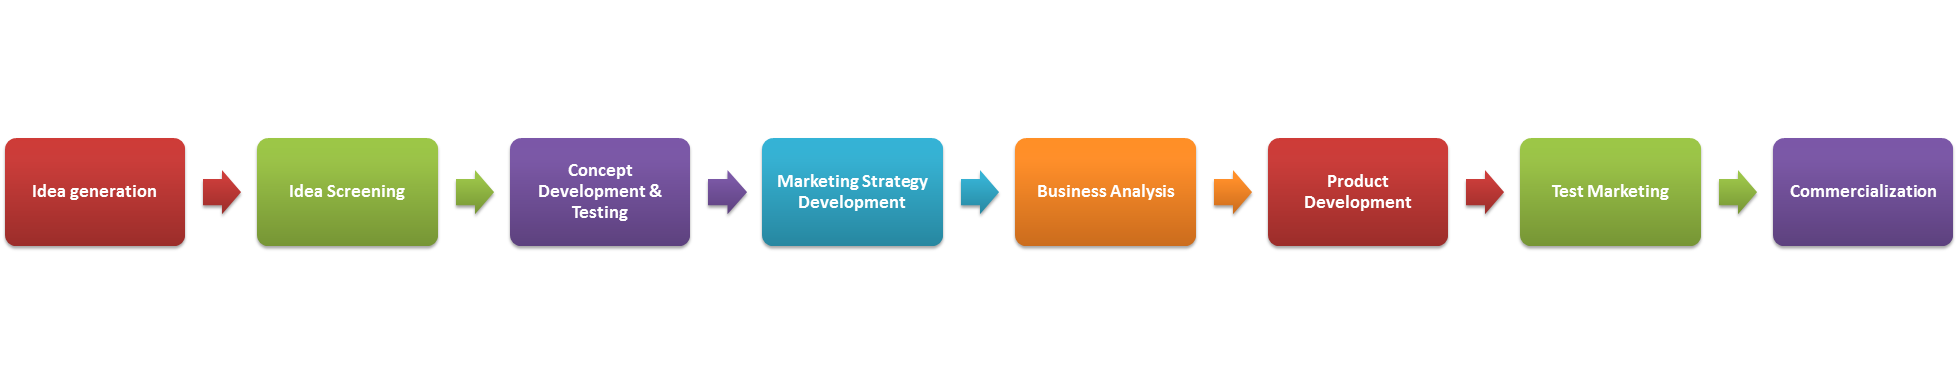 marketing plan for a new product essay A guide to incorporating creative ideas for selling products and services into a marketing plan the little blue book of marketing: build a killer plan in less than a day by paul kurnit and steve.